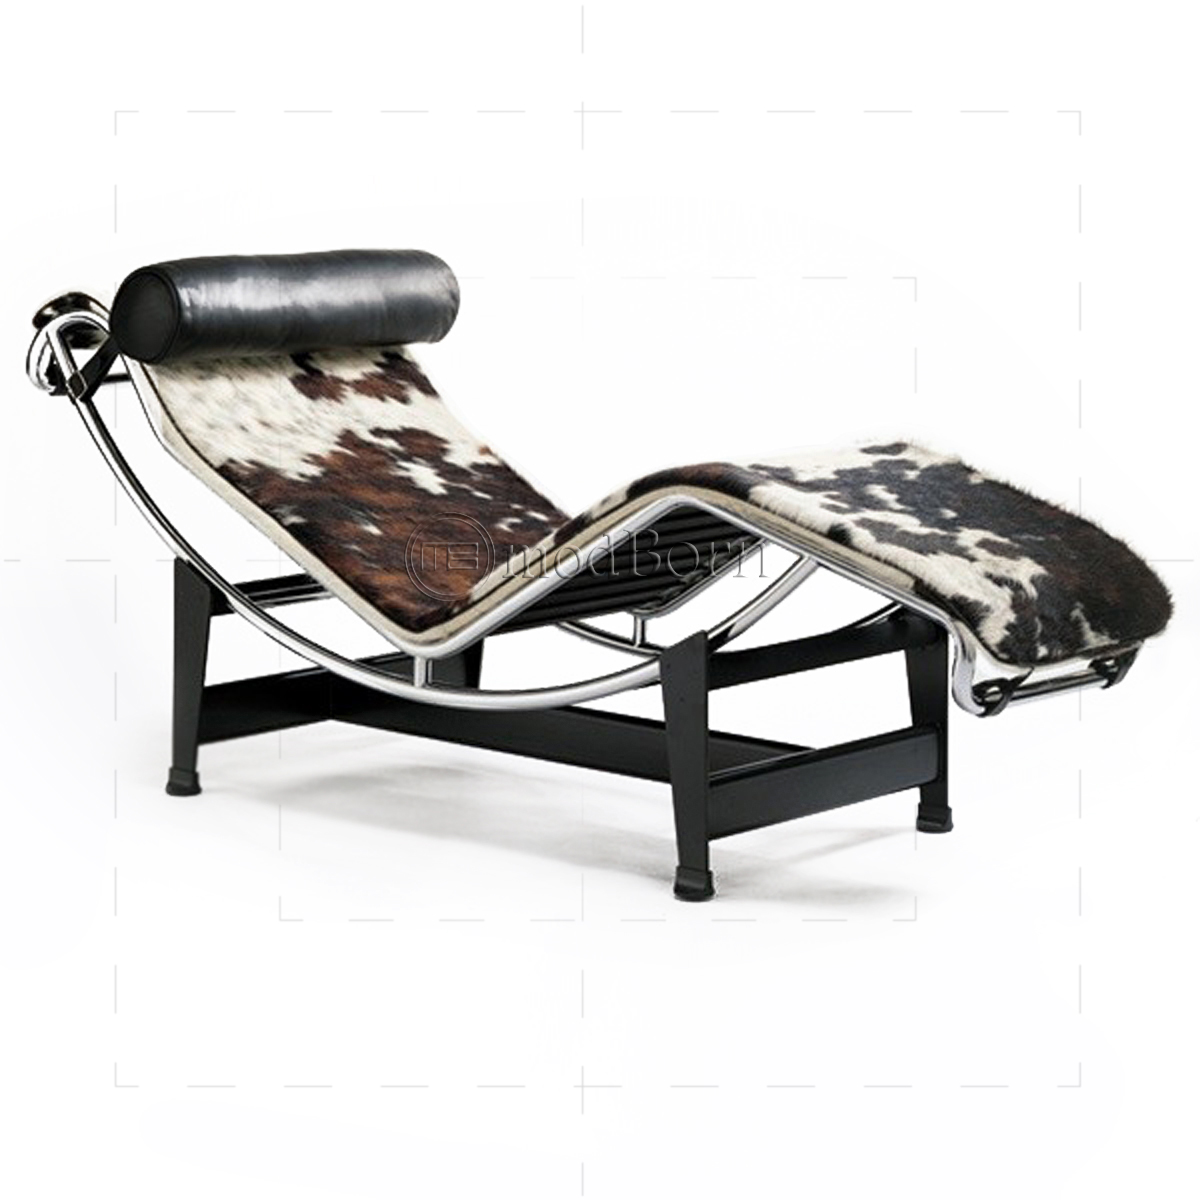 Le corbusier style lc4 chaise longue pony leather replica for Chaise longue le corbusier ebay